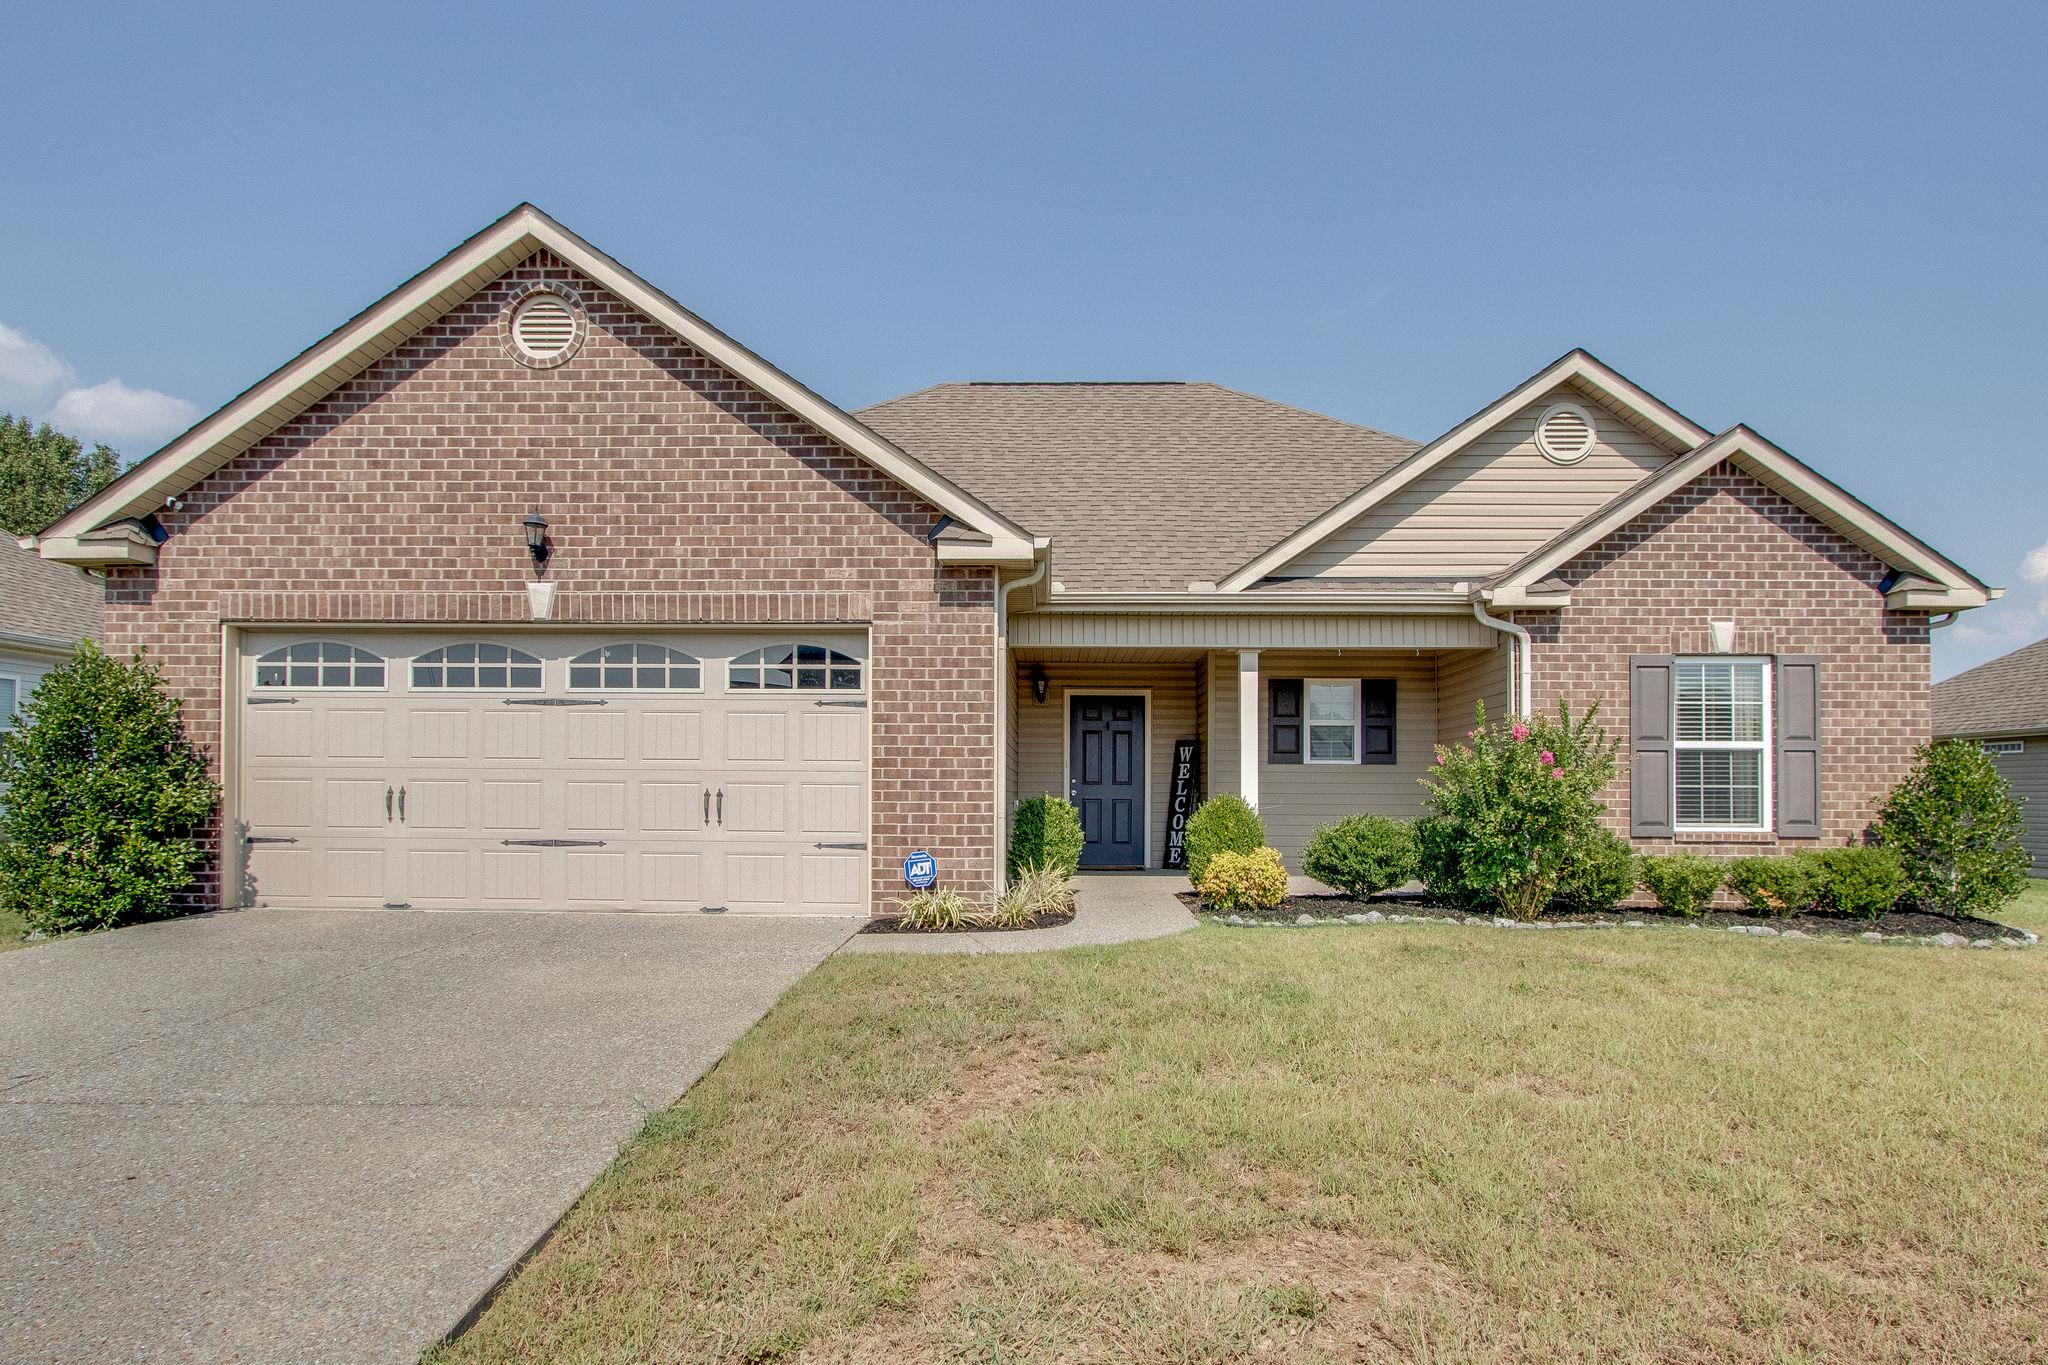 1040 Campbell Ave, Gallatin in Sumner County County, TN 37066 Home for Sale